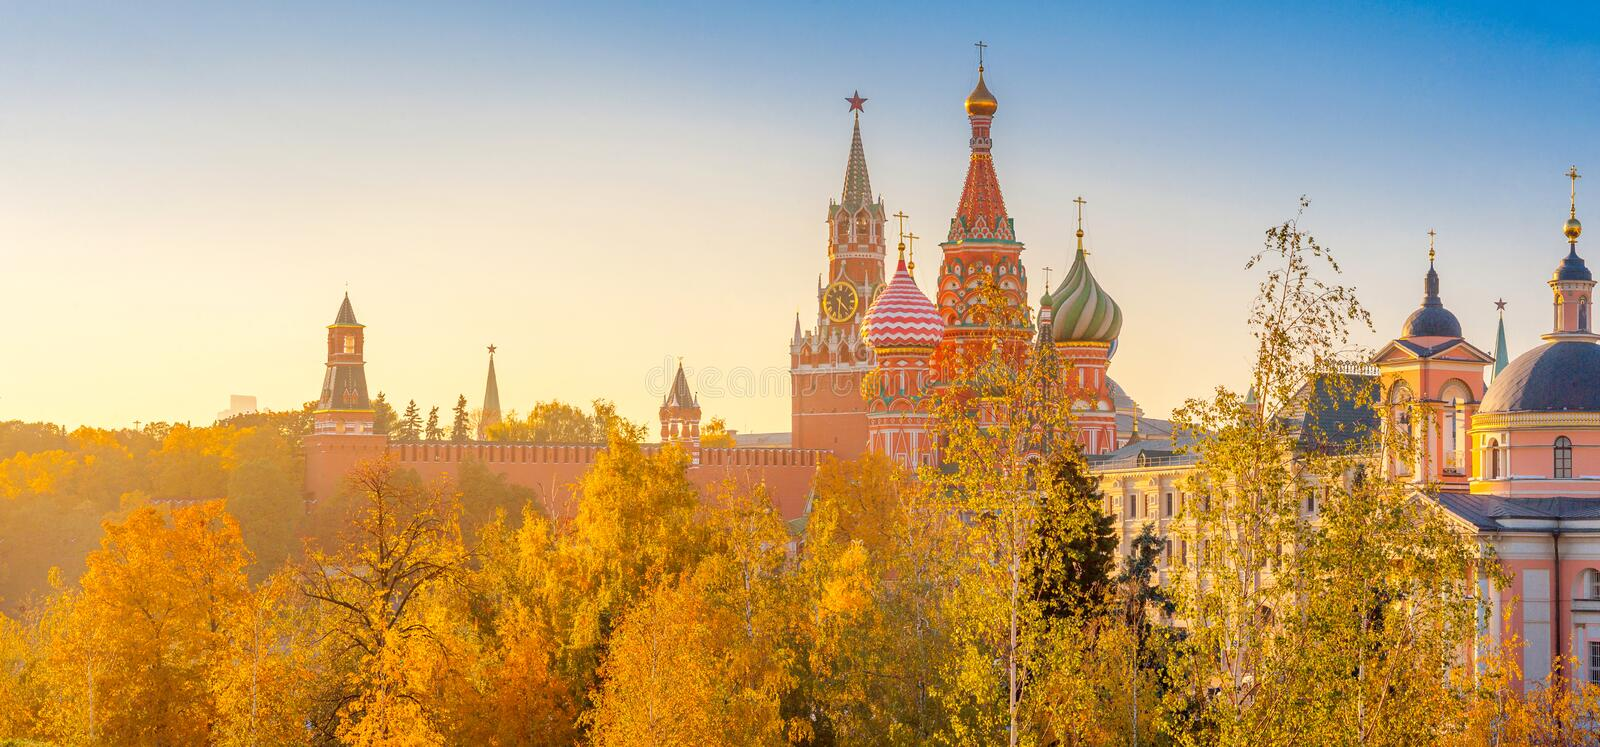 View of St. Basil`s Cathedral and Spassky Tower on Red Square at bright sunset, autumn evening stock photography